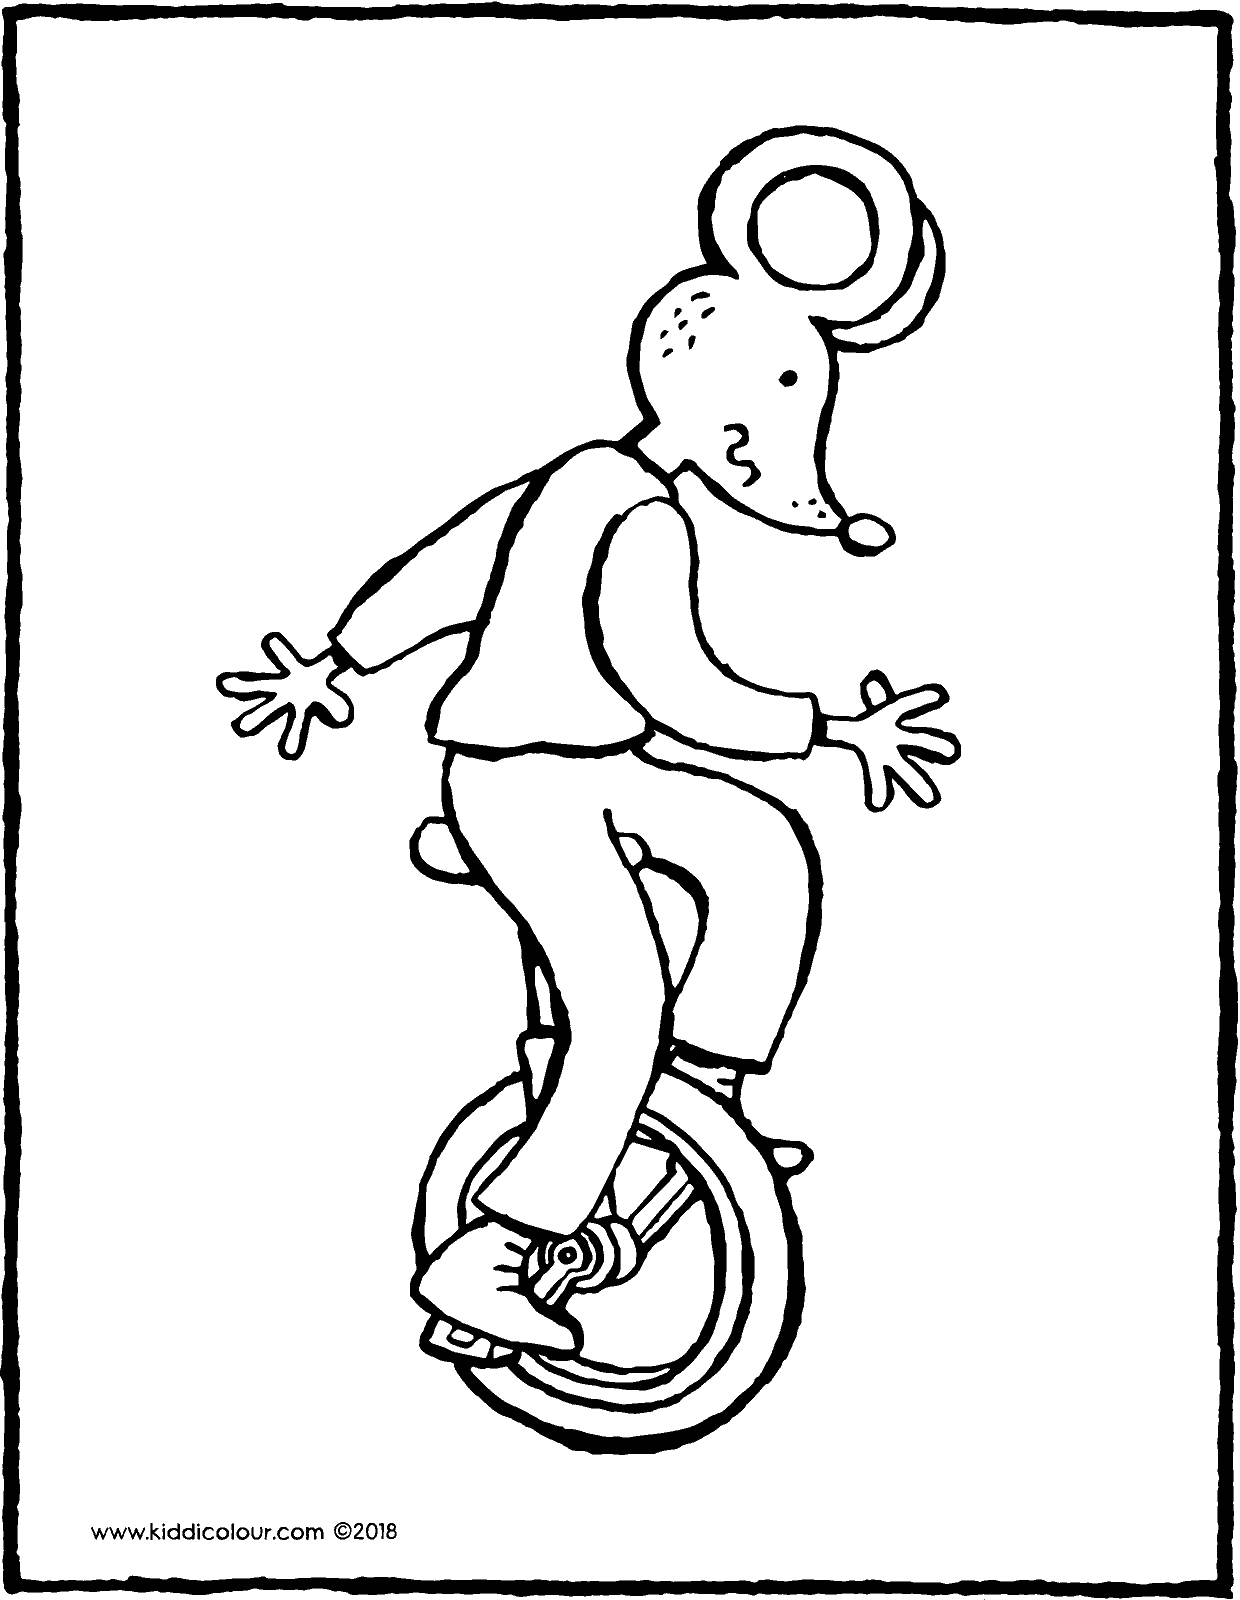 Thomas riding a unicycle colouring page drawing picture 01V